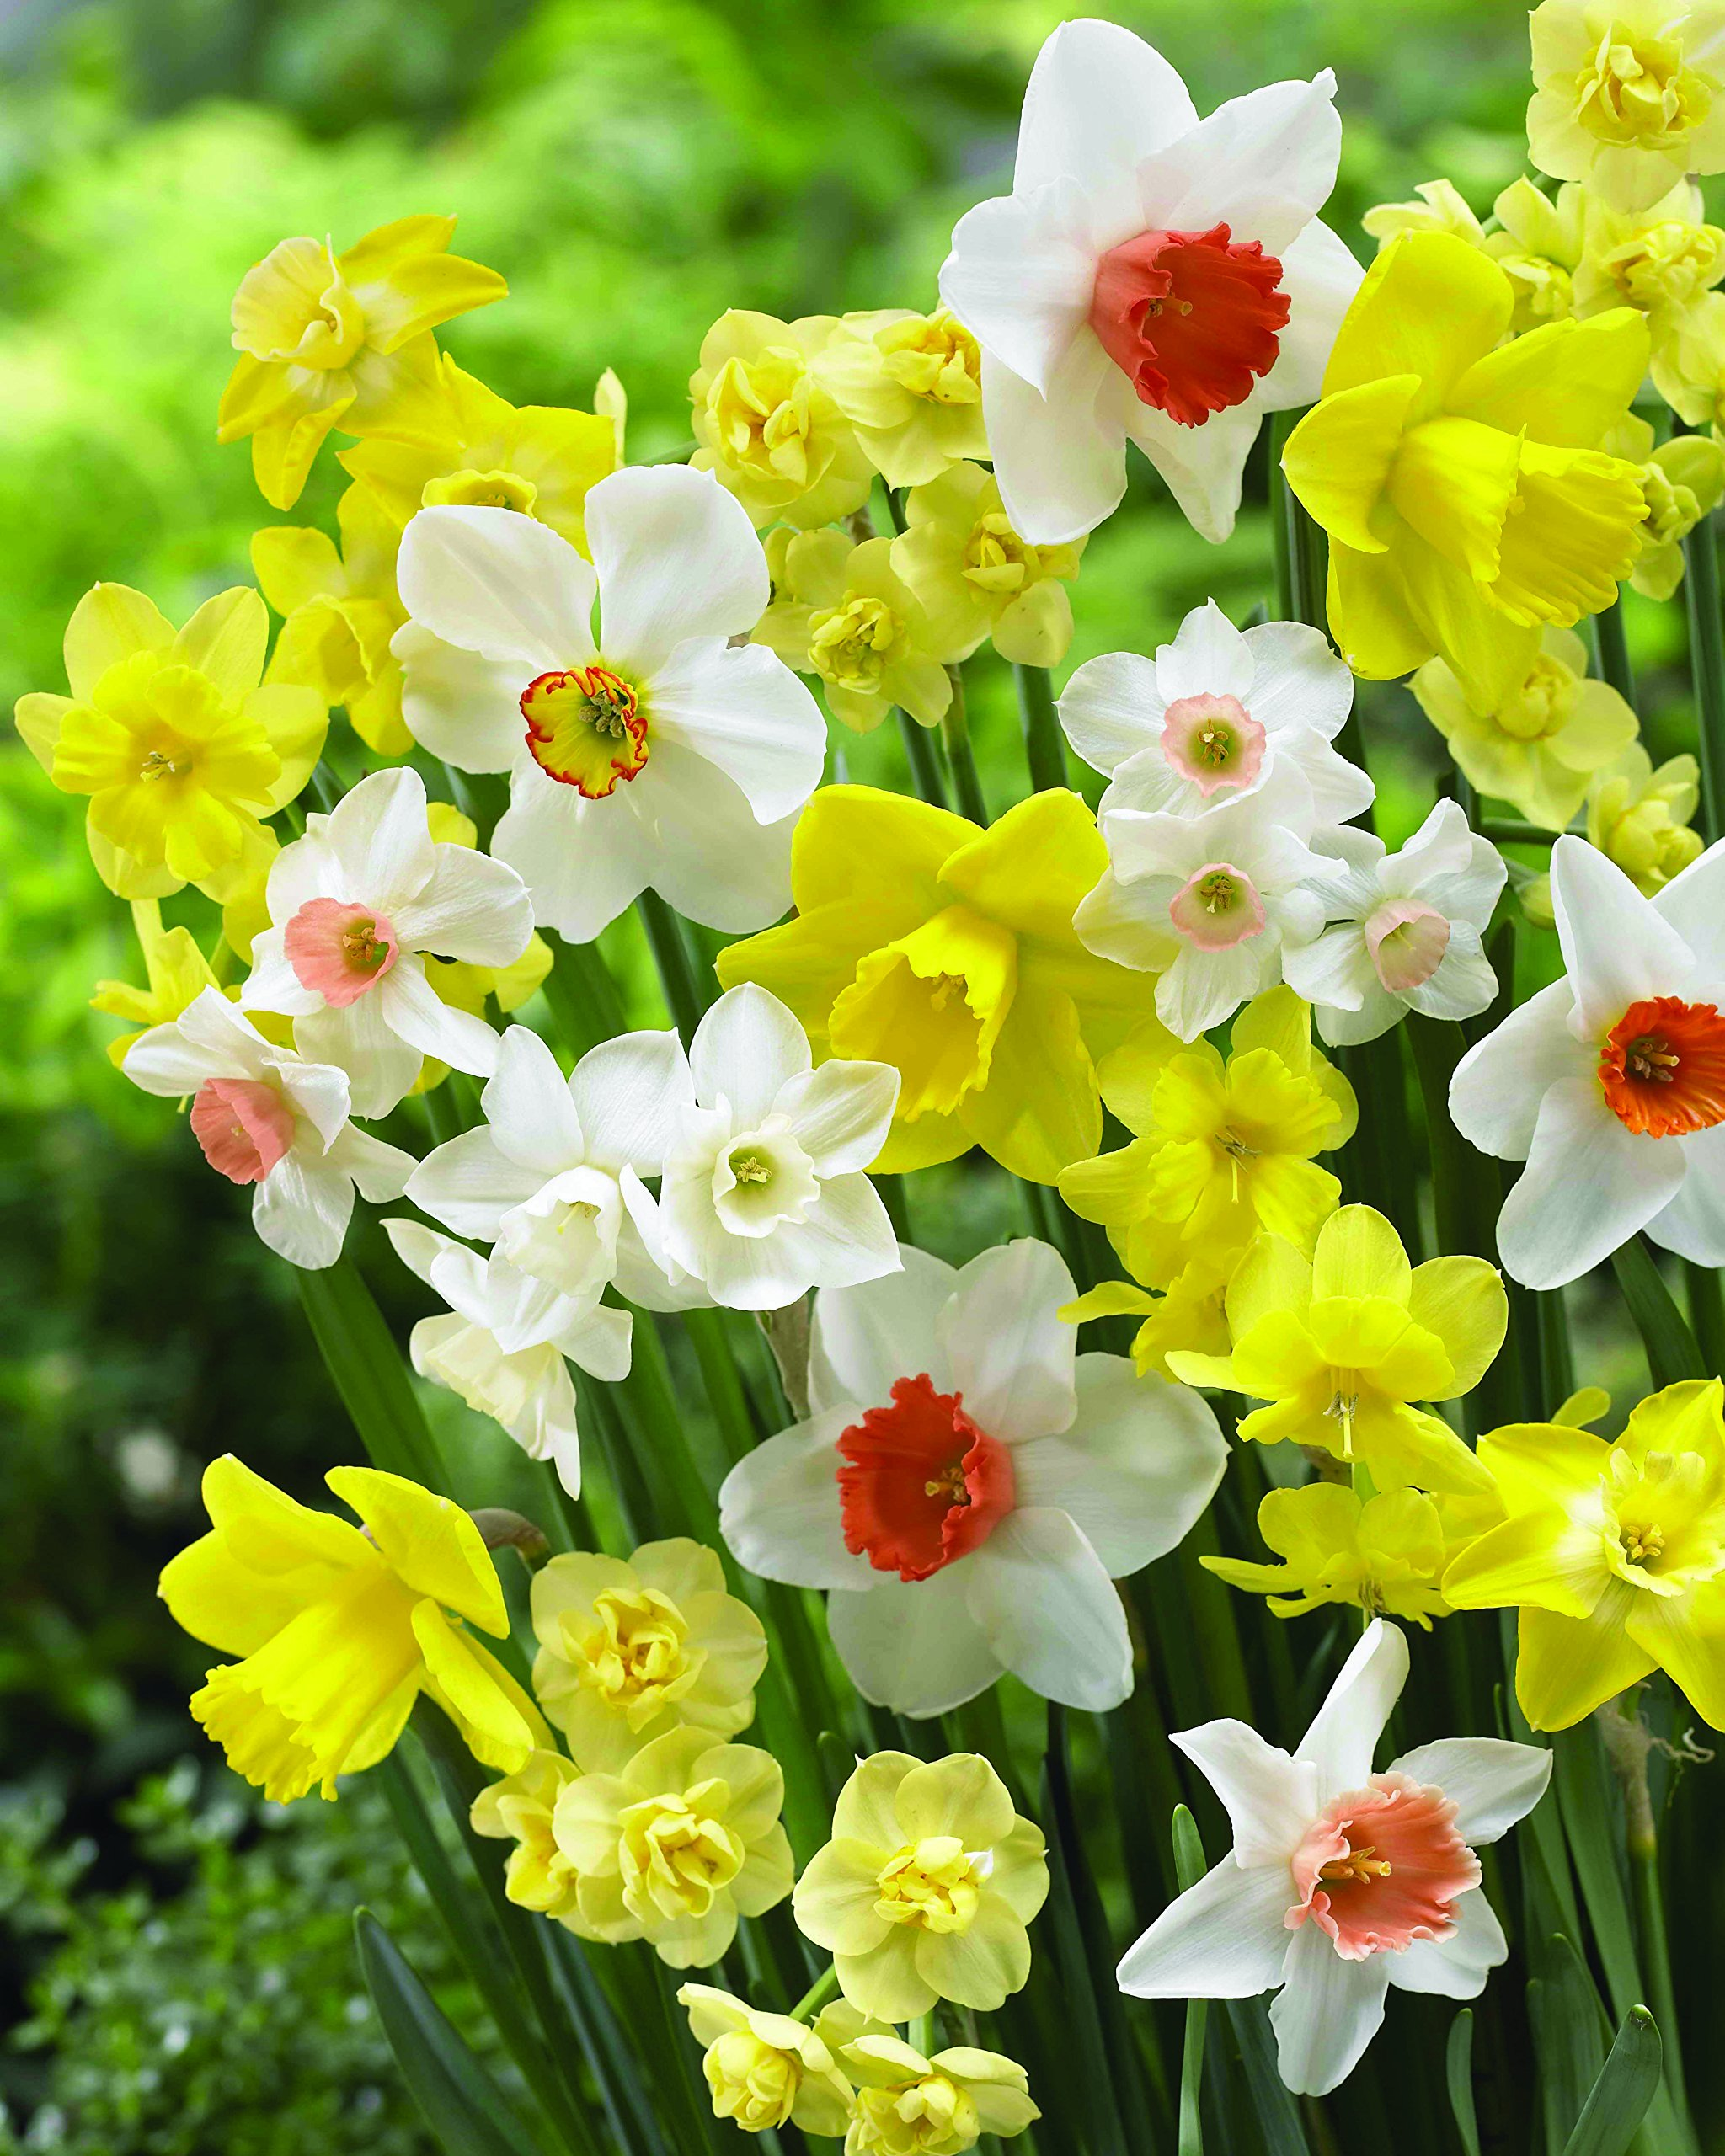 Burpee's Smiling Maestro Daffodil - 10 Flower Bulbs | Gold & Orange | 12 - 14cm Bulb Diameter